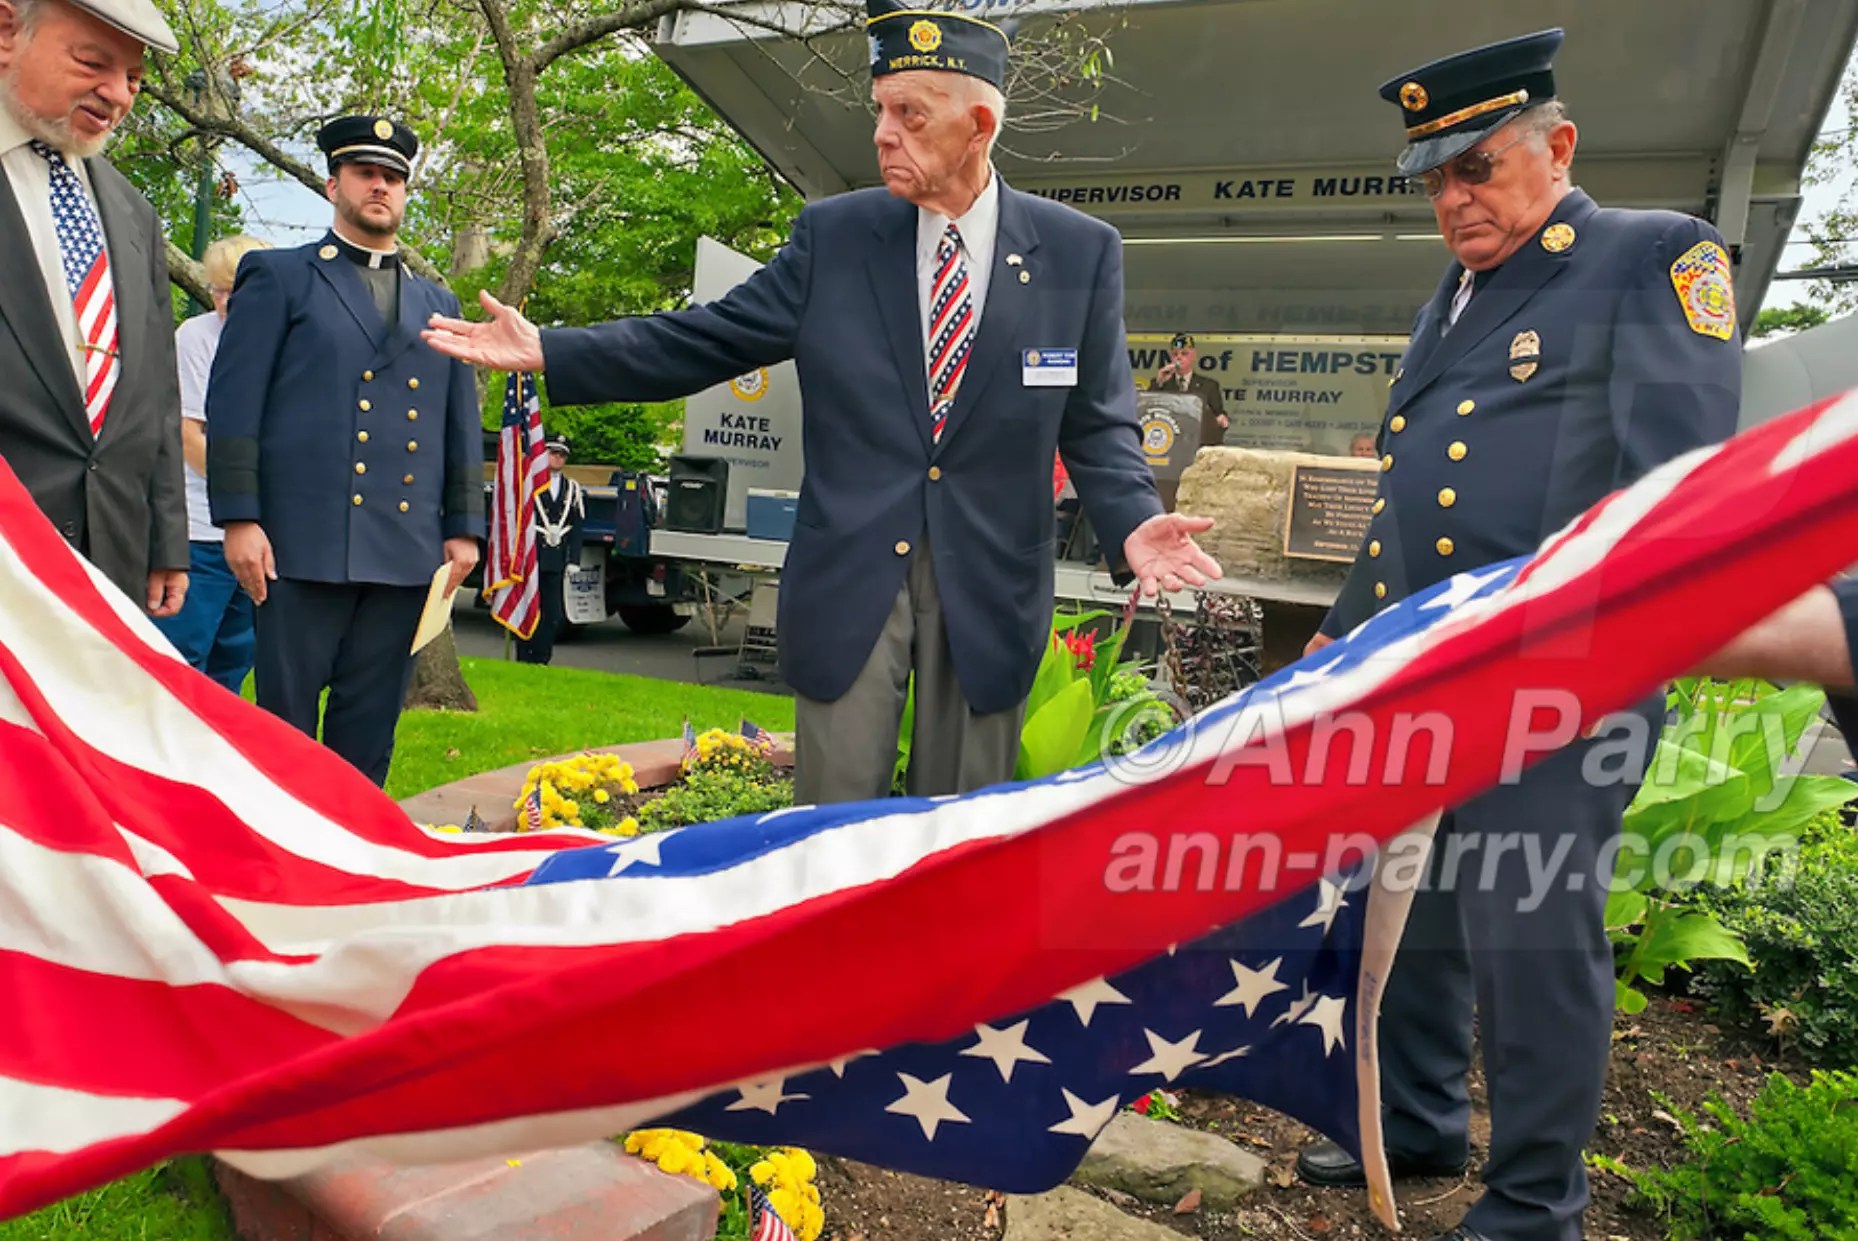 Merrick, NY, USA. Sept. 11, 2011. Removing American Flag to reveal monument made with steel from World Trade Center, at Merrick Post #1282 American Legion Tenth Anniversary of 9/11 event are, L-R, Rabbi Paul Kirchner, Father Eric Fasano, Adjutant Robert Tom Riordan PCC,; and North Merrick Fire Dept. Ex. Chief Henry Hinrichs, at Merrick Veterans Memorial Park.